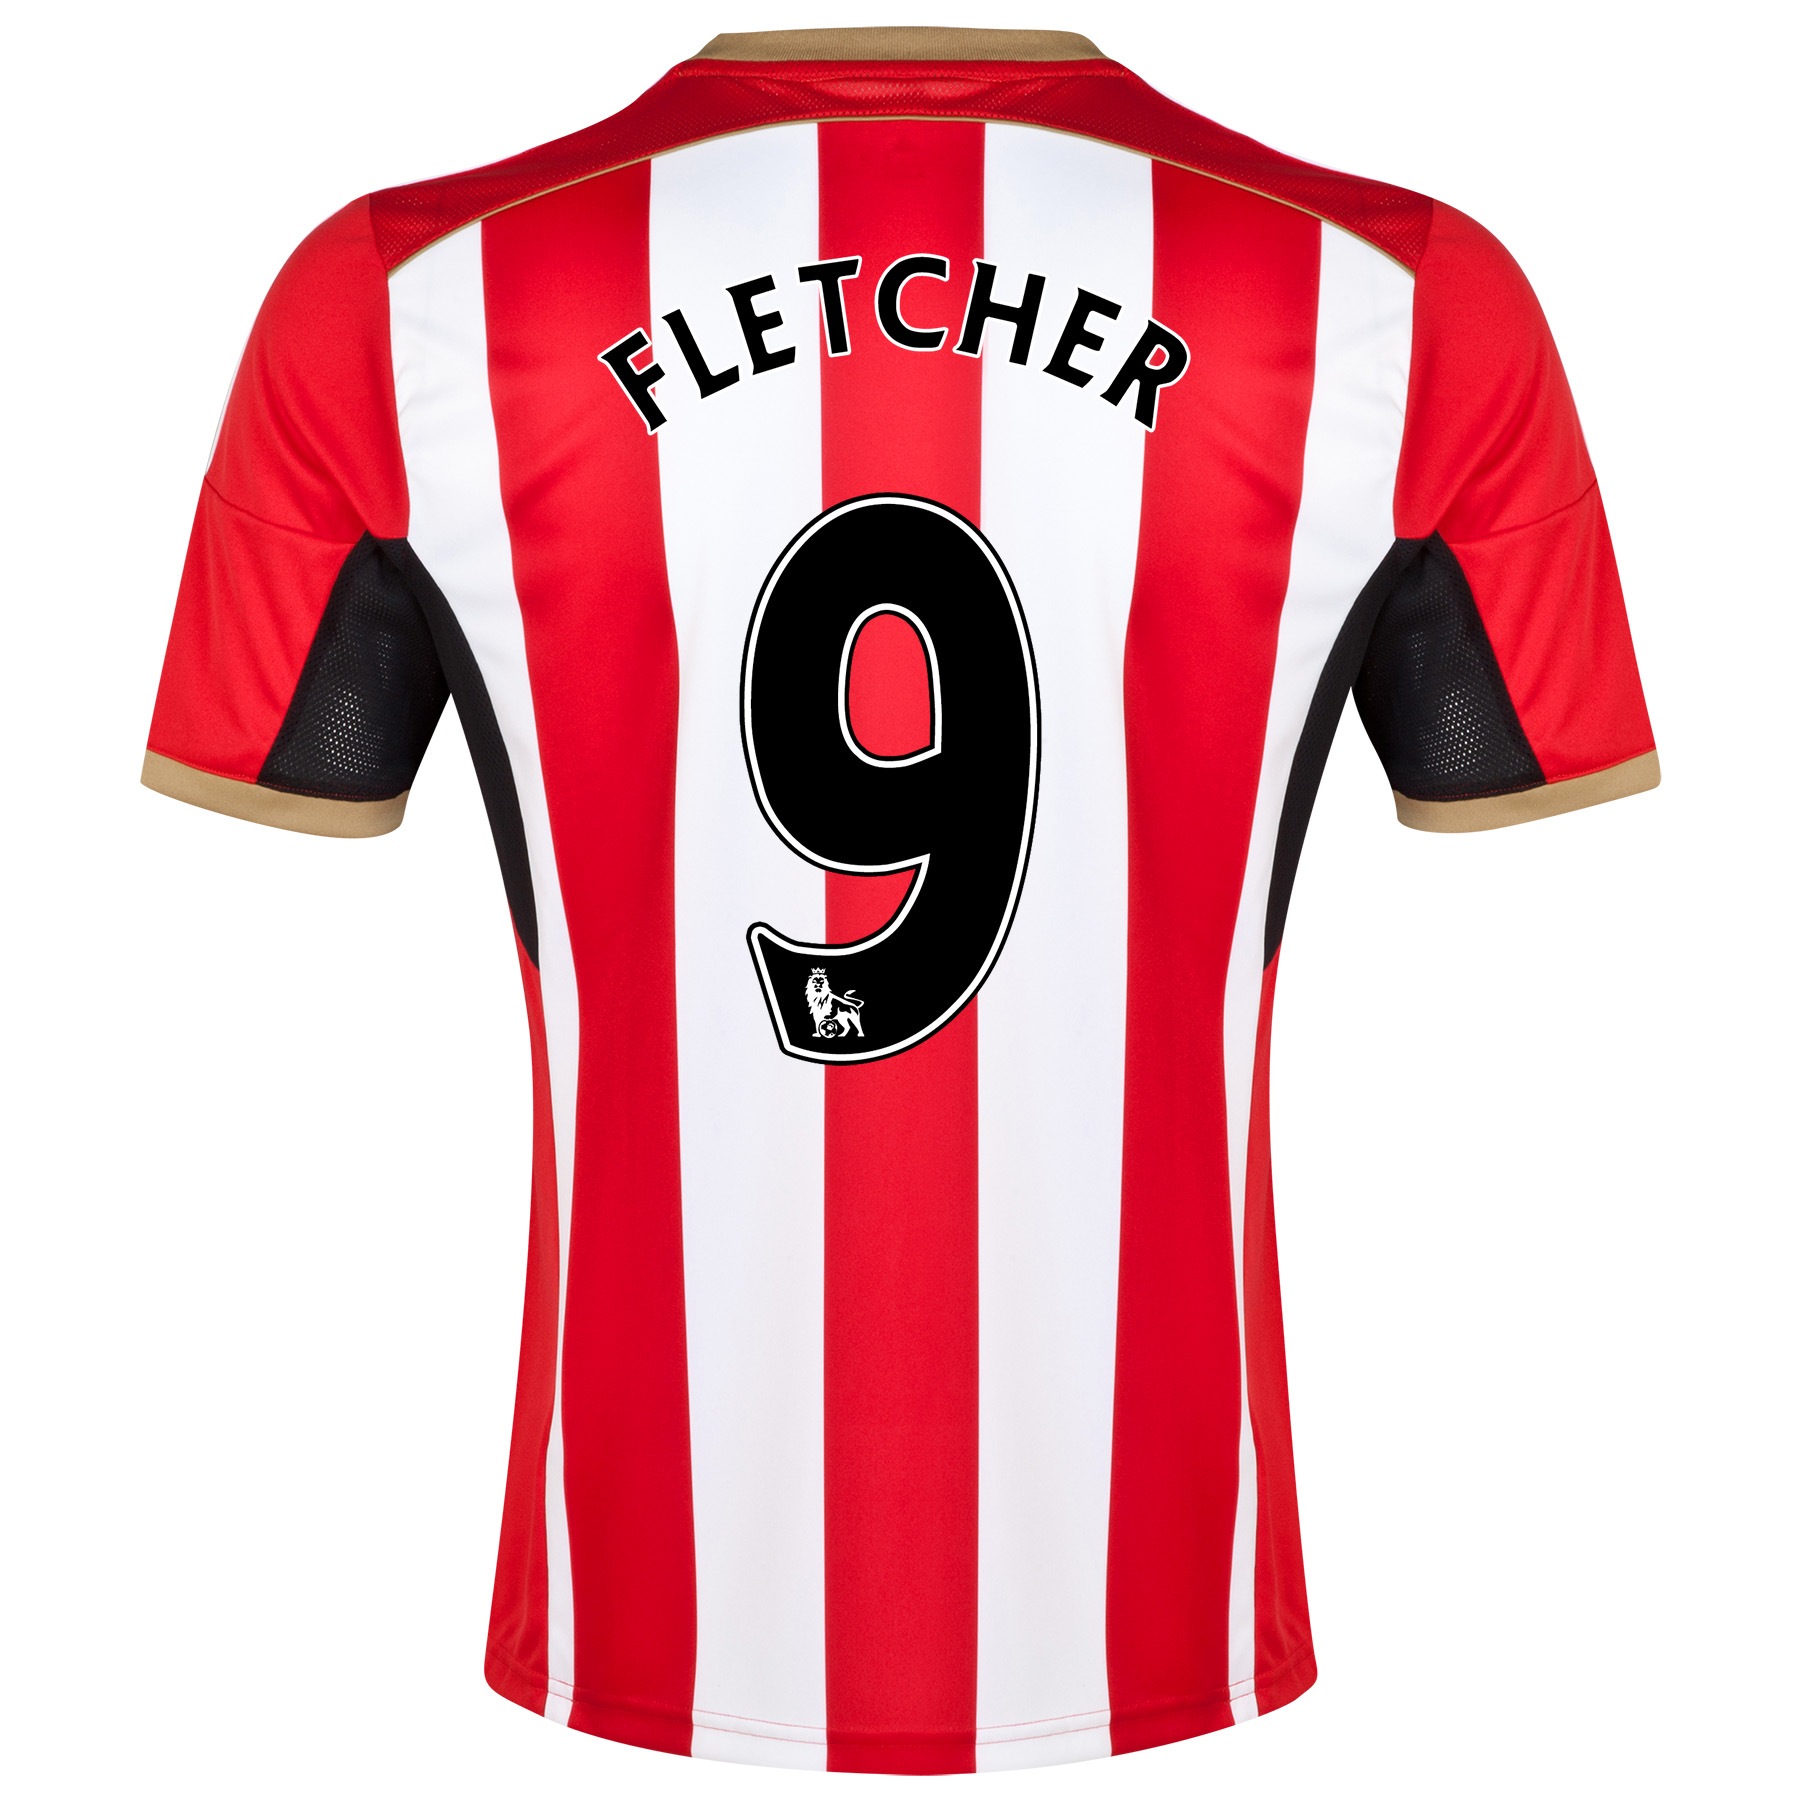 Sunderland Home Shirt 2014/15 Red with Fletcher 9 printing